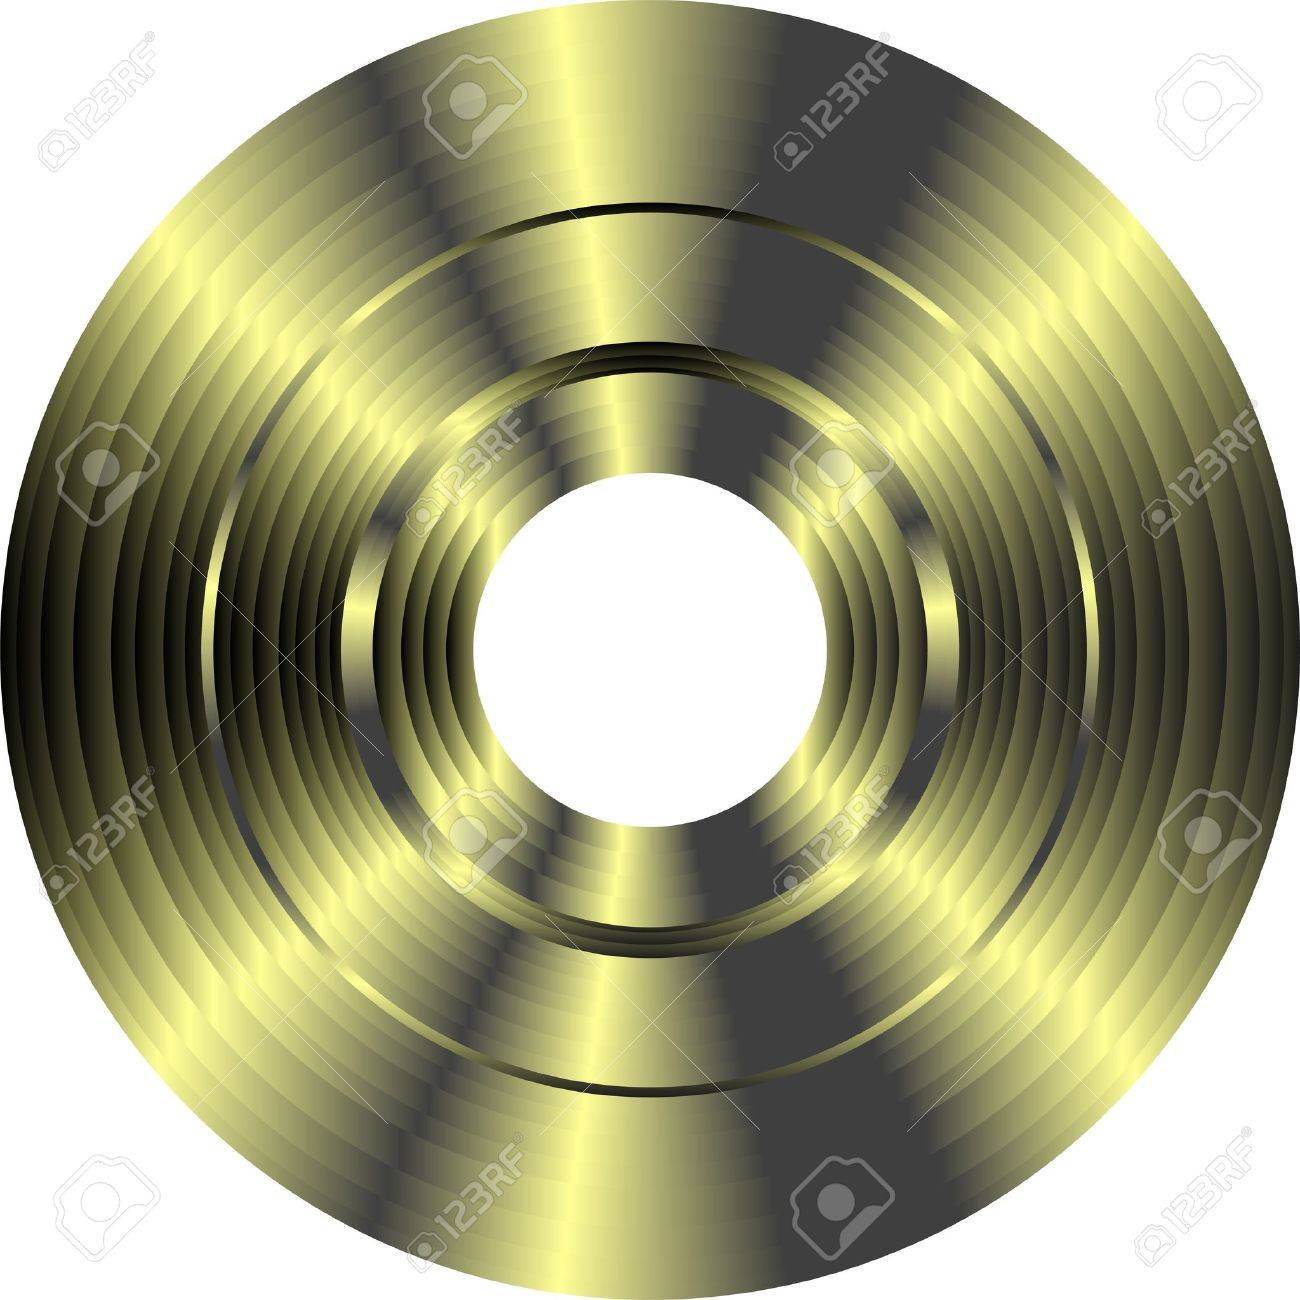 gold vinyl record isolated on white background Stock Photo - 12632643